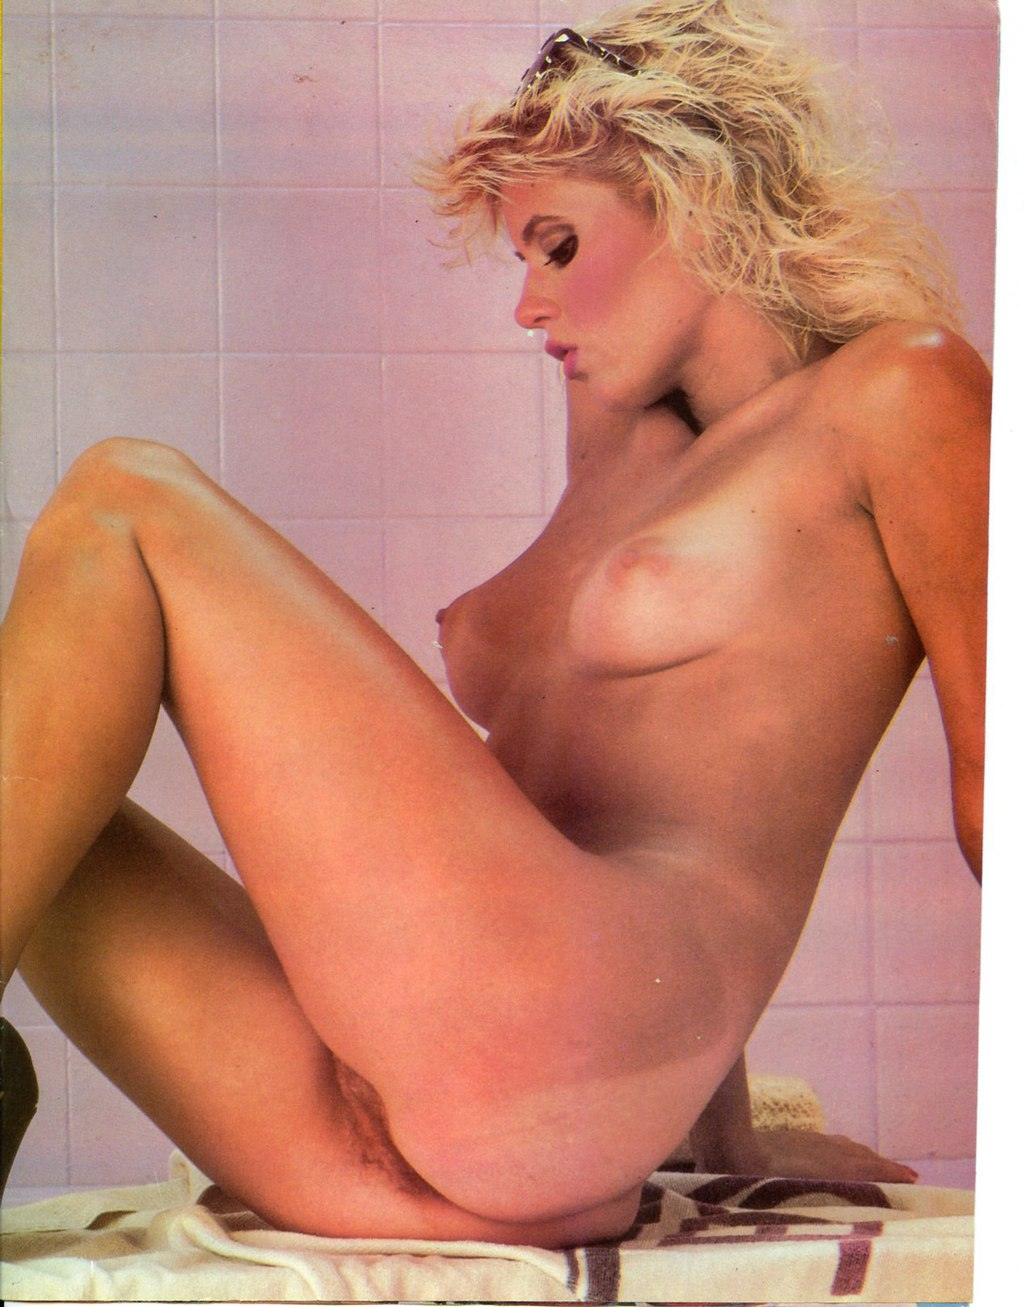 ginger hot lynn porn star Ginger Lynn DVD buy adult star  Over 4 Hours!